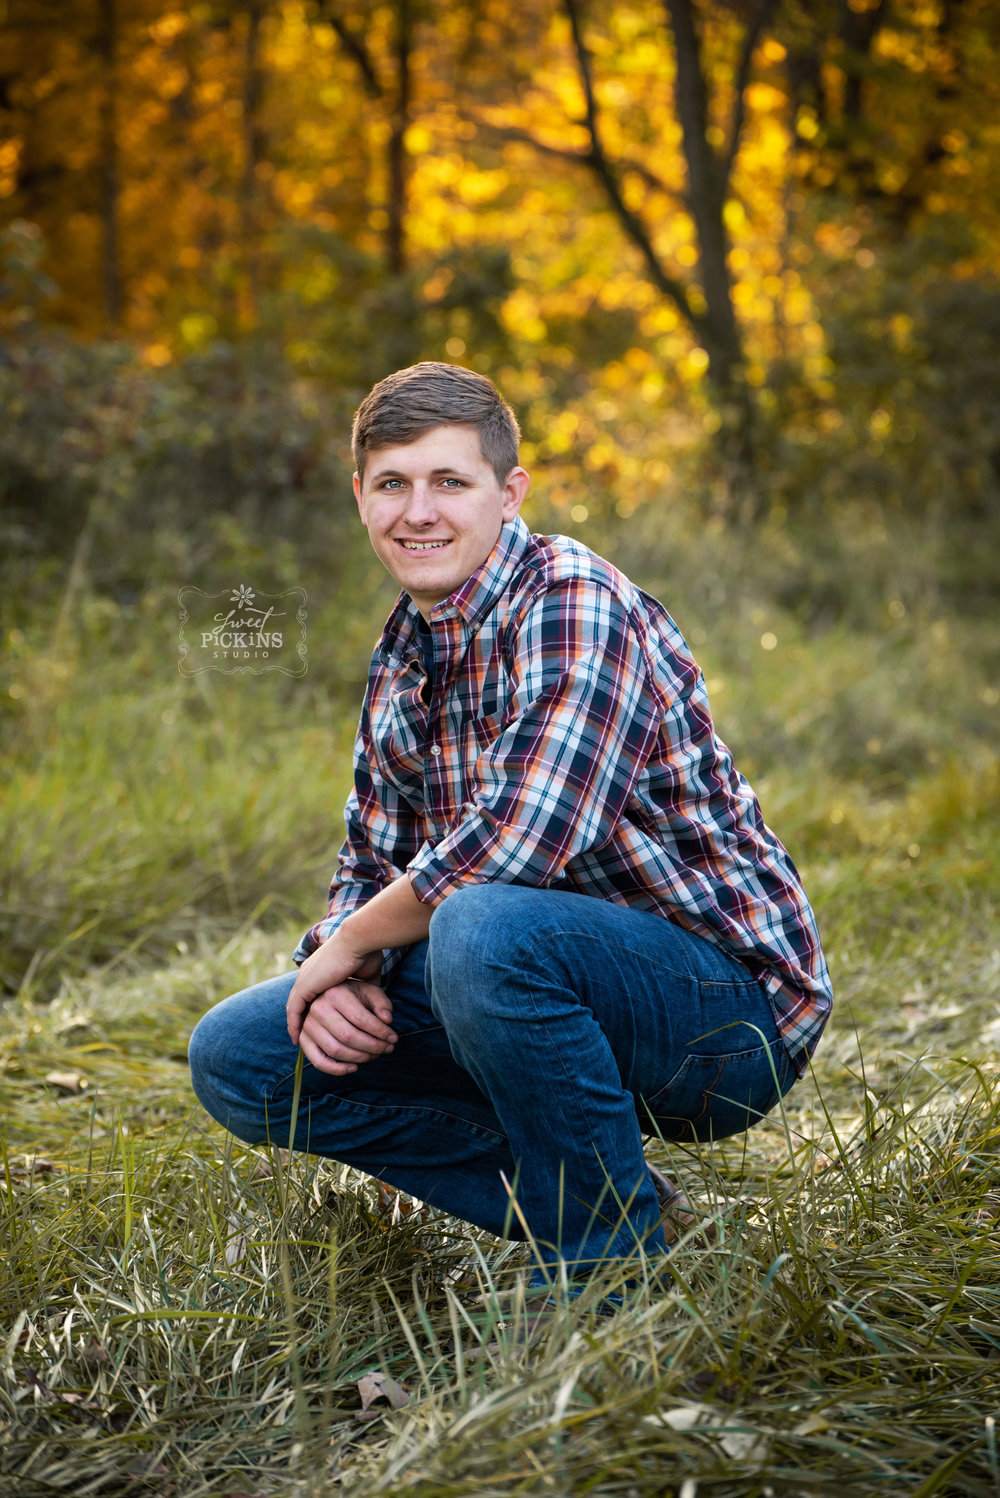 Senior Portrait Photography | Outdoor Fall Senior Posing